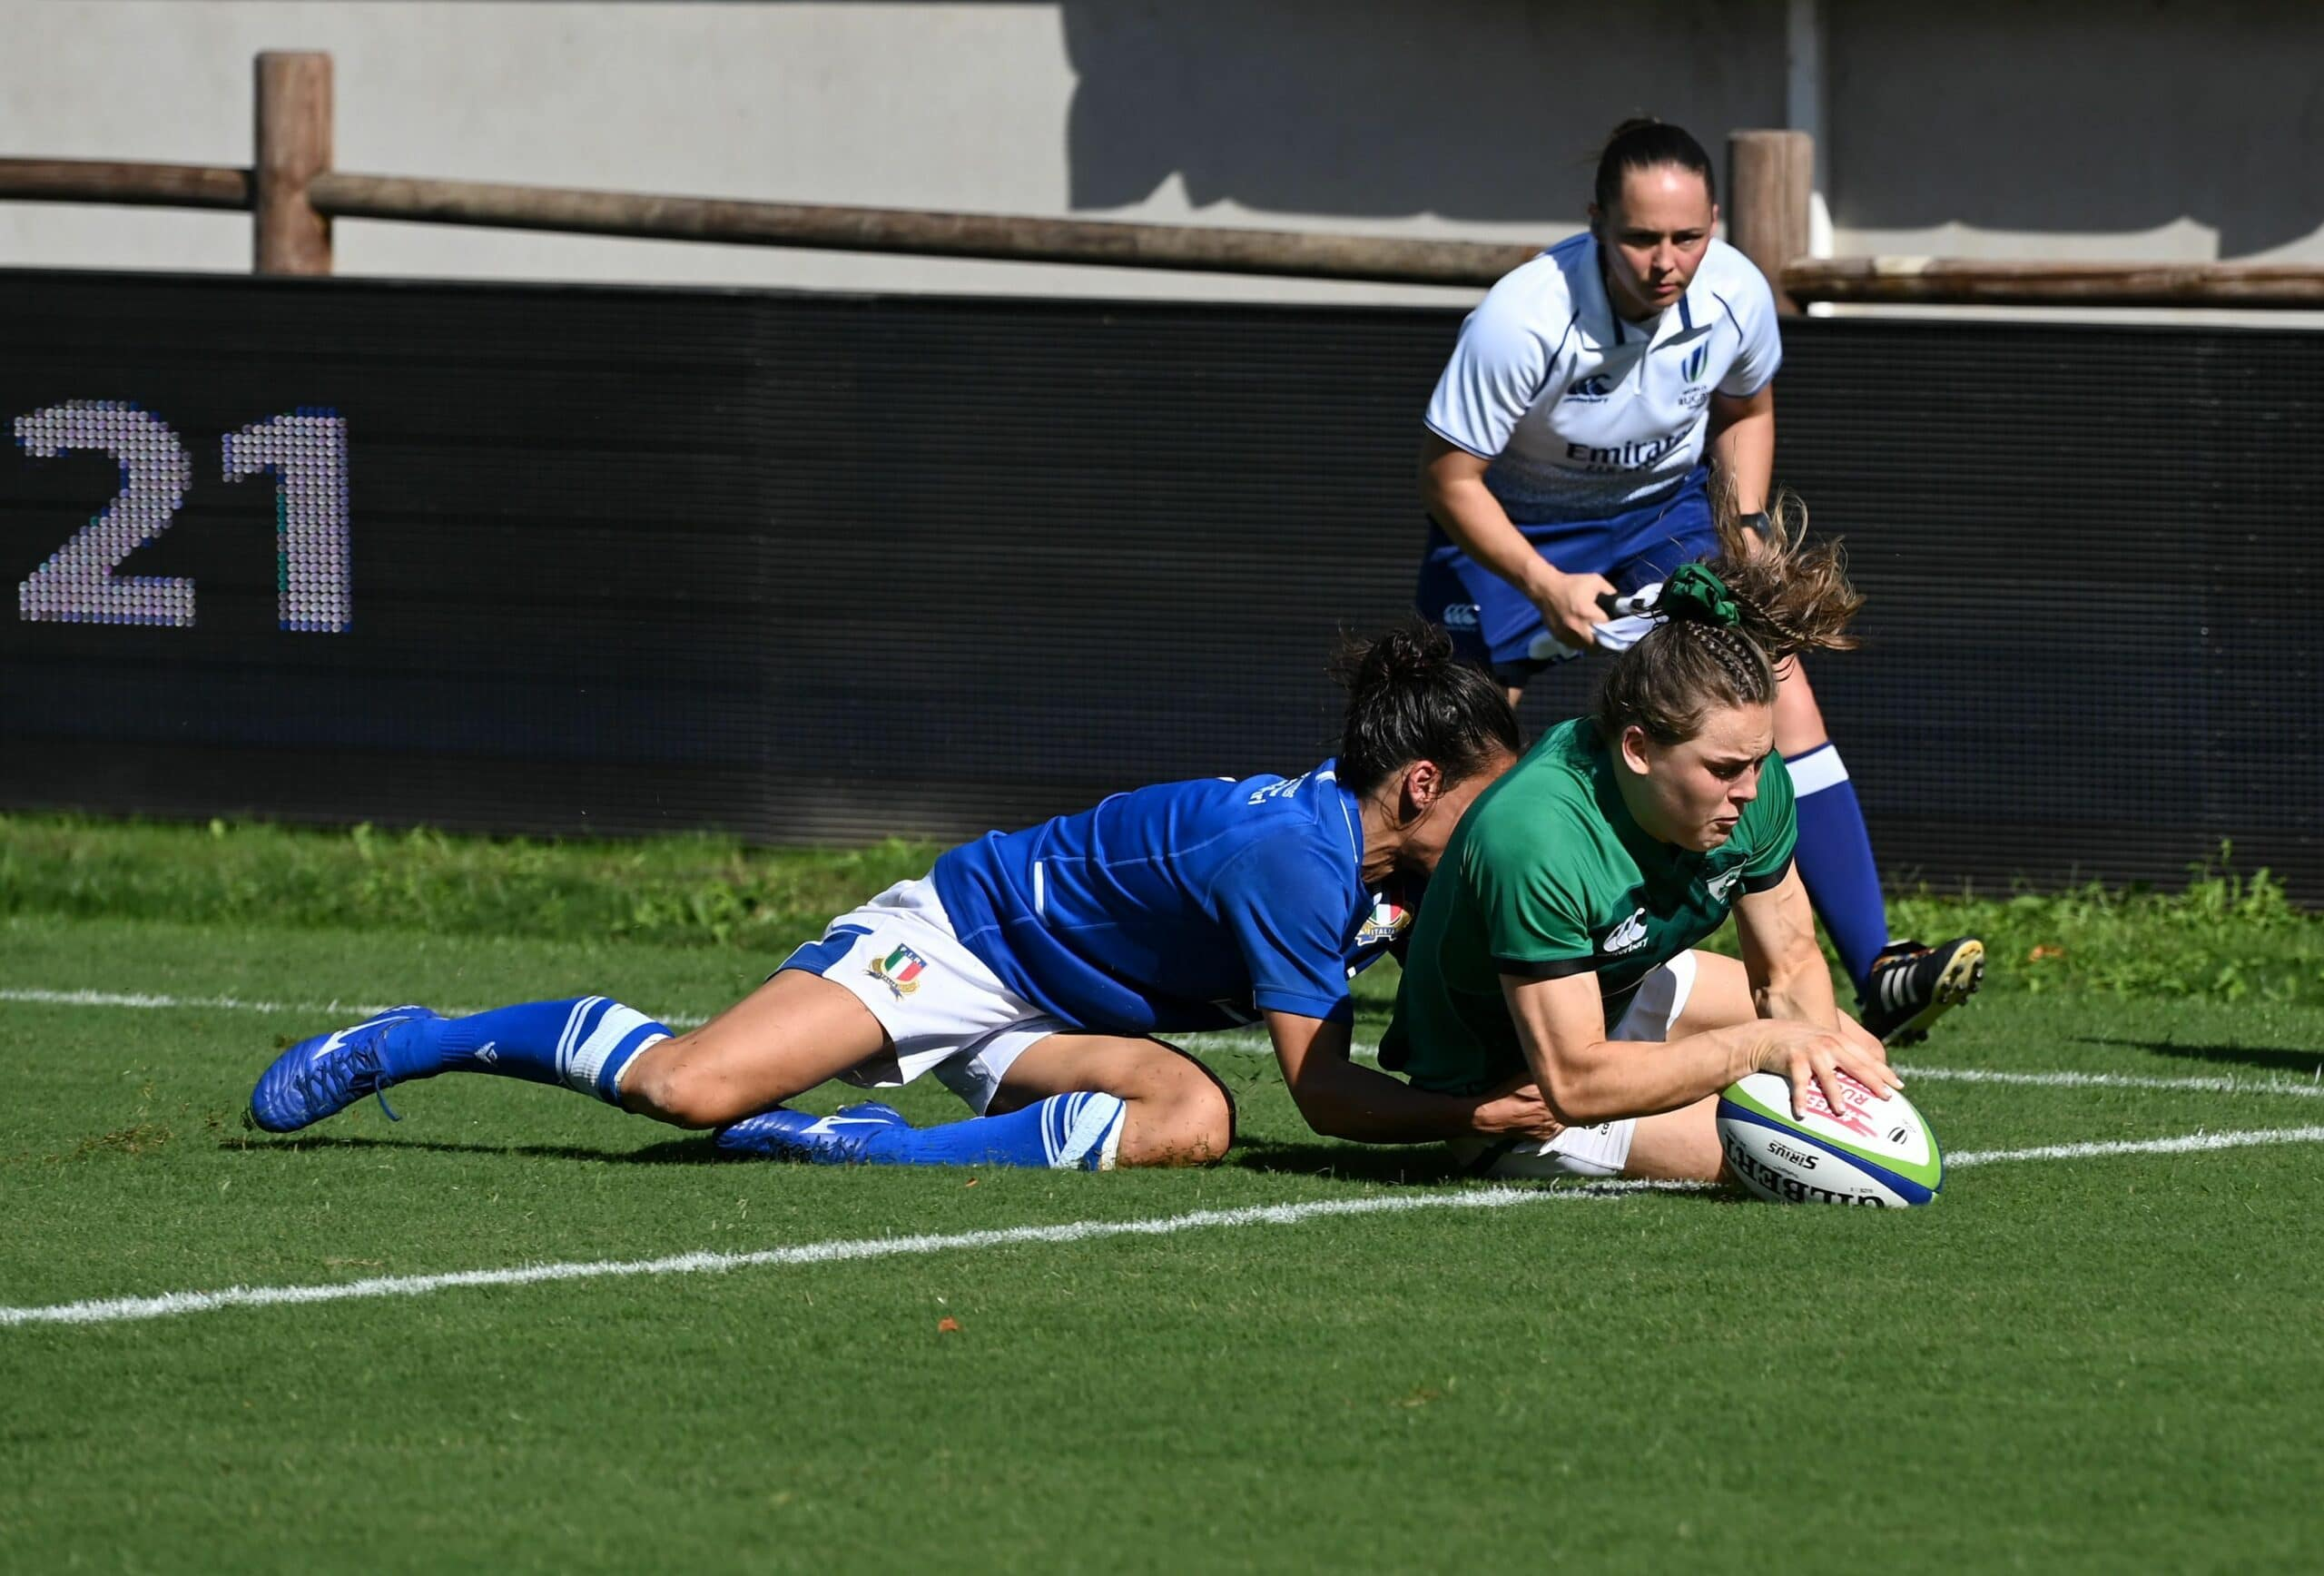 Rugby World Cup 2021 Europe Qualifier Italy v Ireland scaled